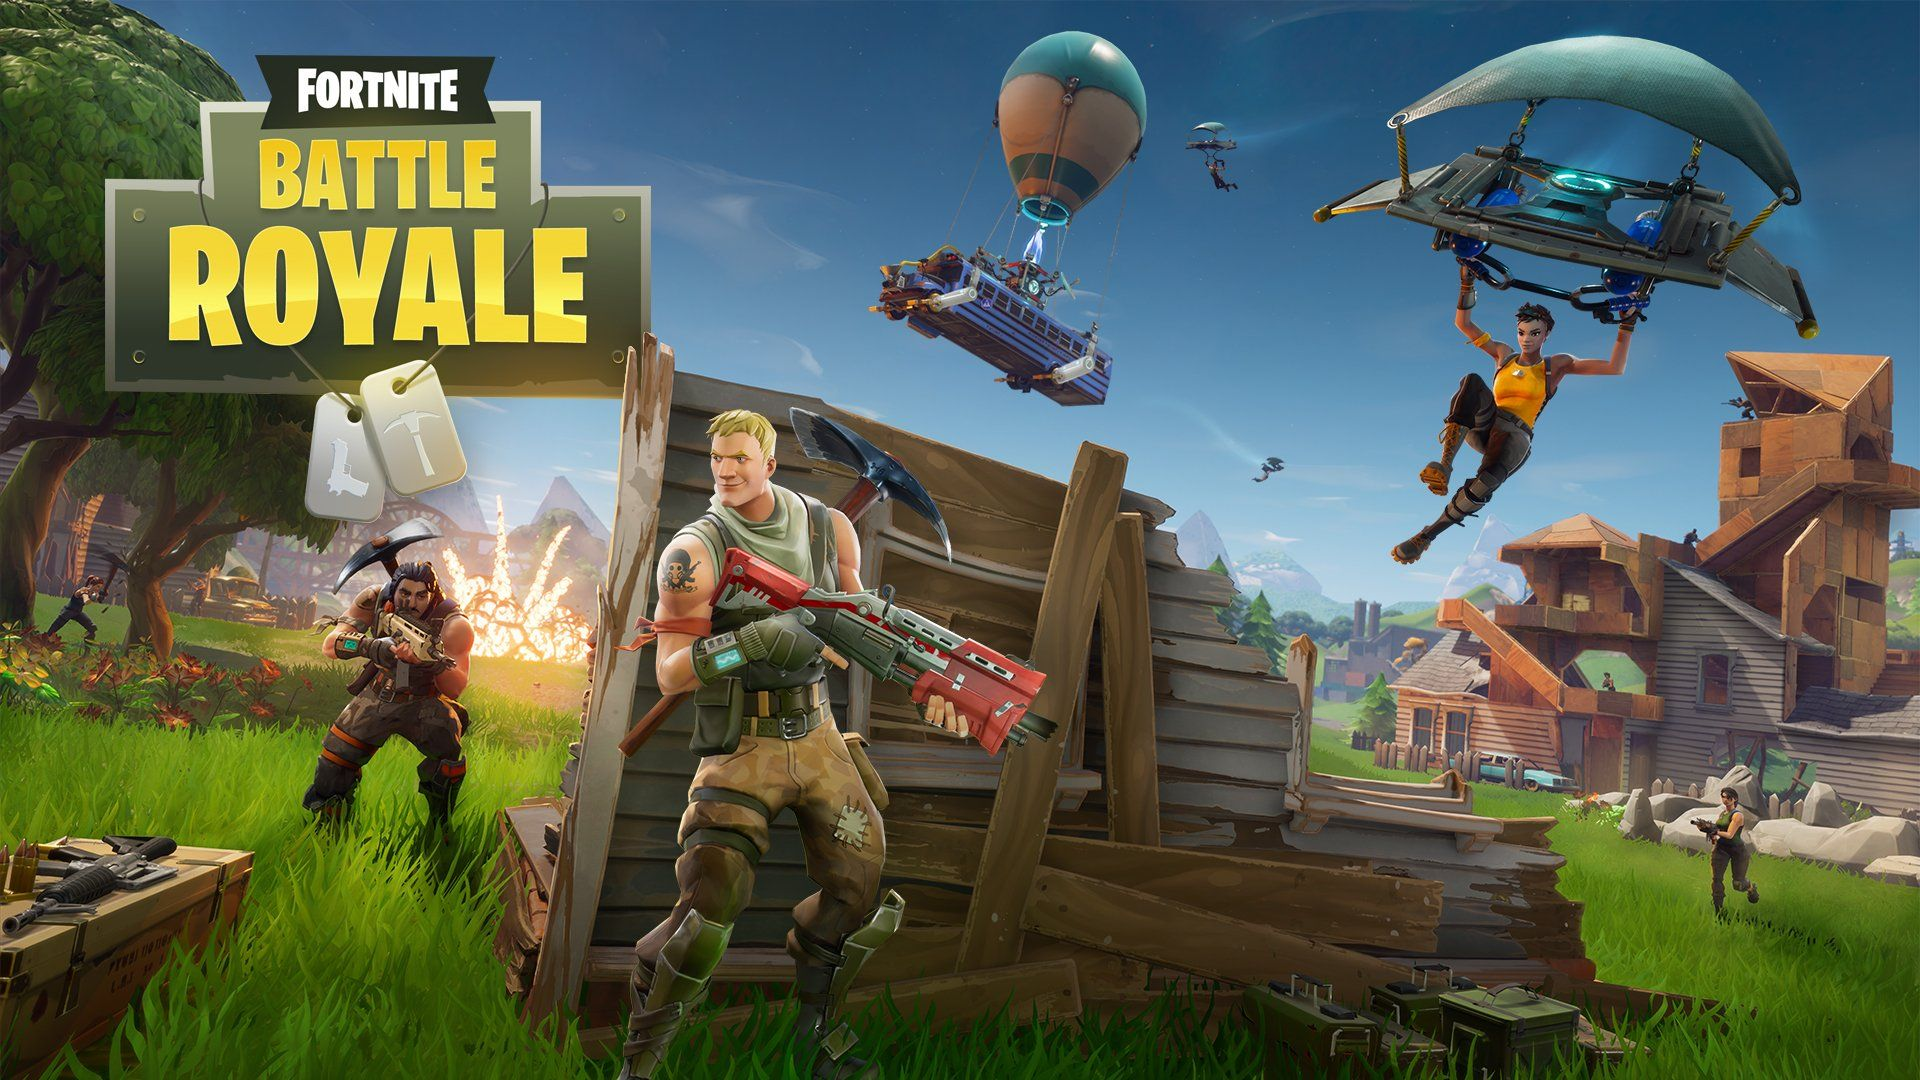 Fortnite Battle Royale Season 4